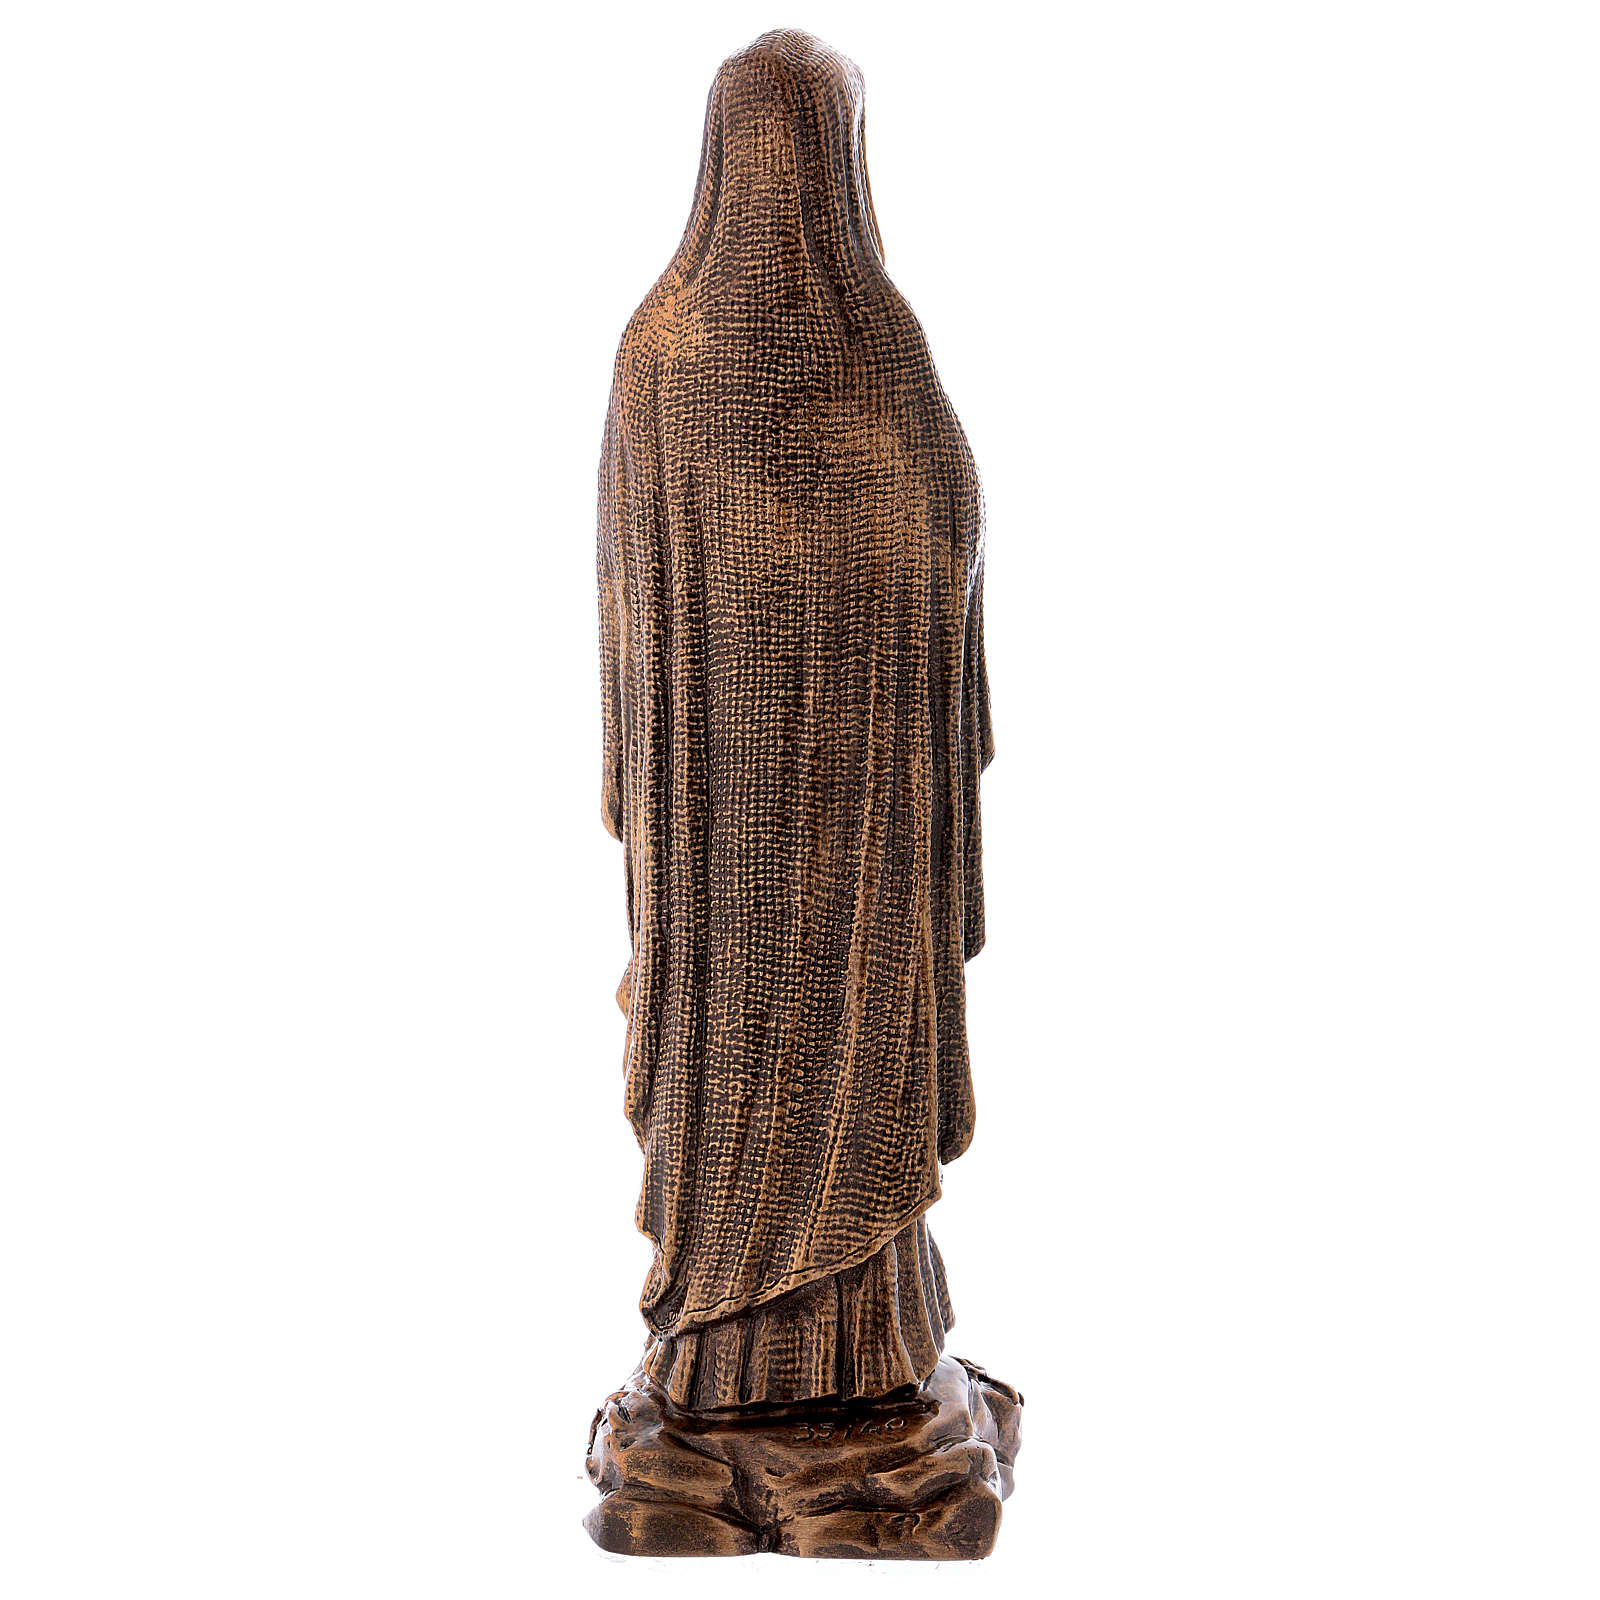 Our Lady of Lourdes statue in bronzed marble powder composite 40 cm, OUTDOOR 4